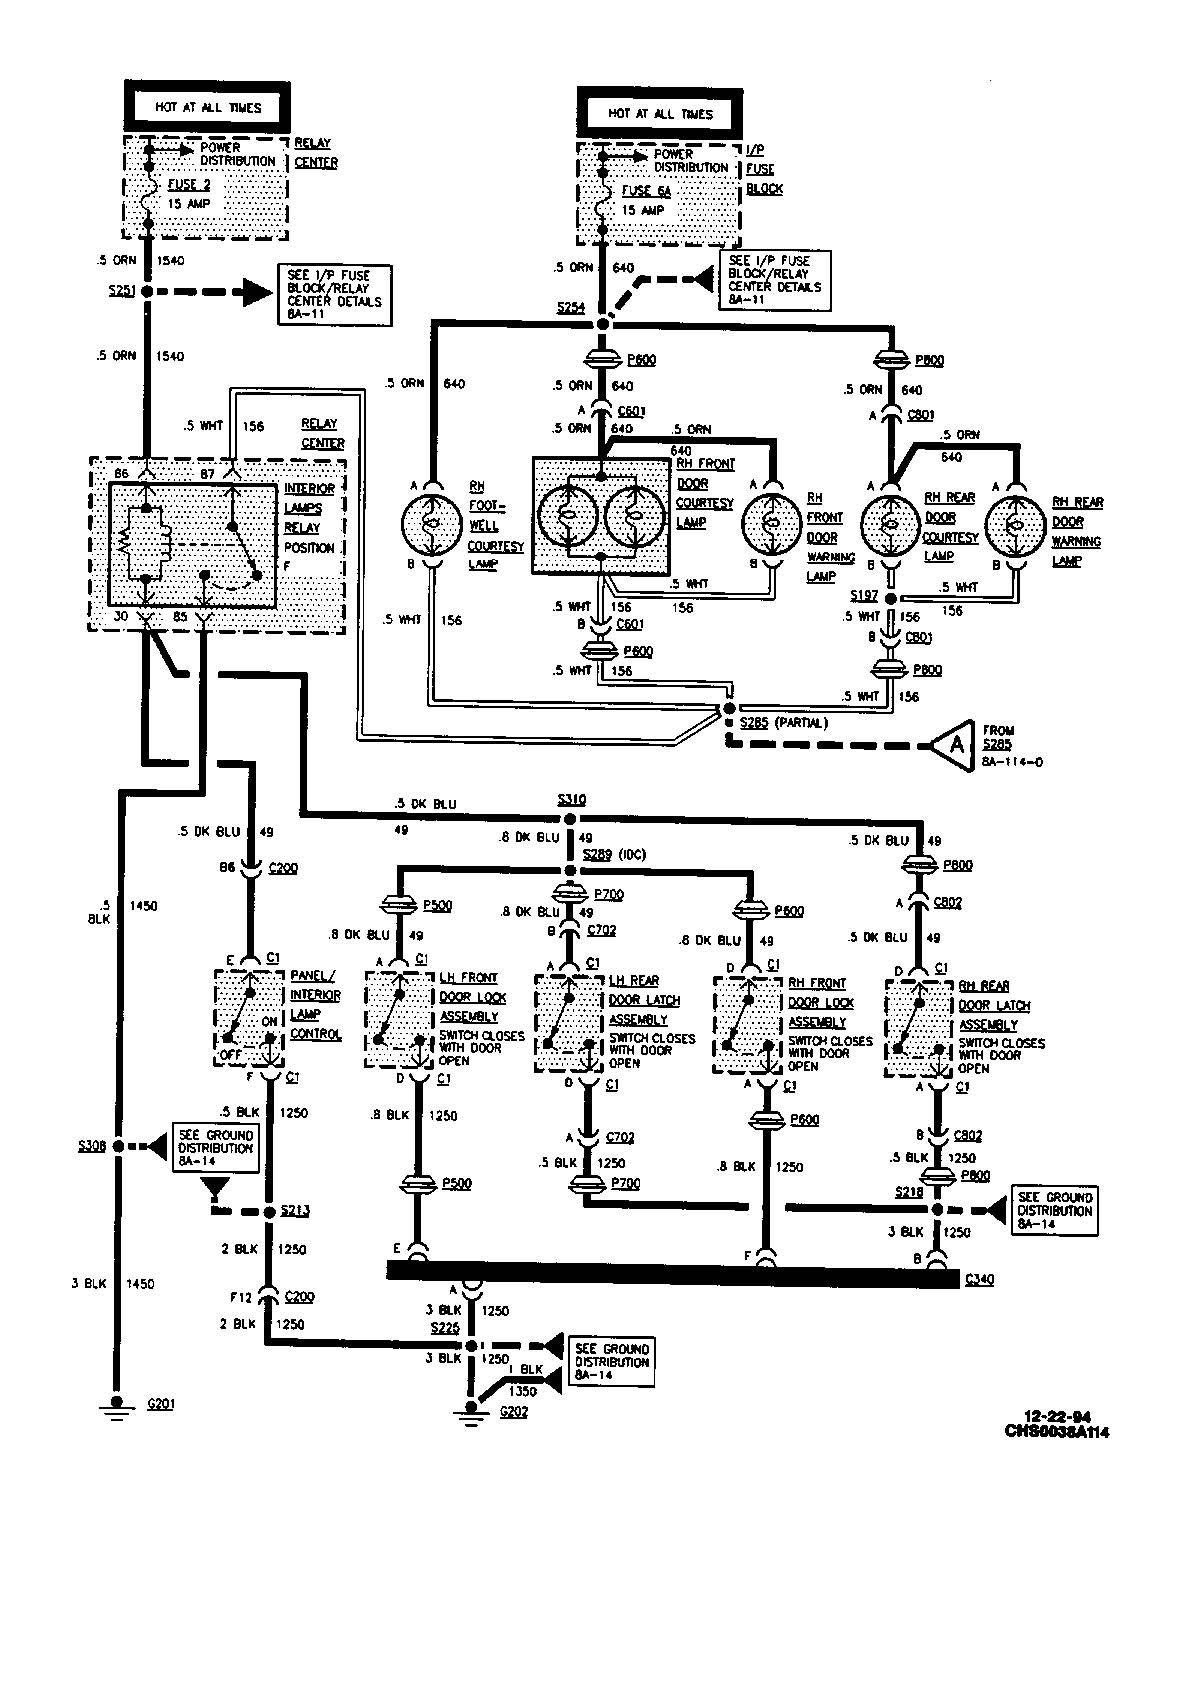 Pontiac Wiring : Pontiac Bonneville 3 8 Engine Diagram